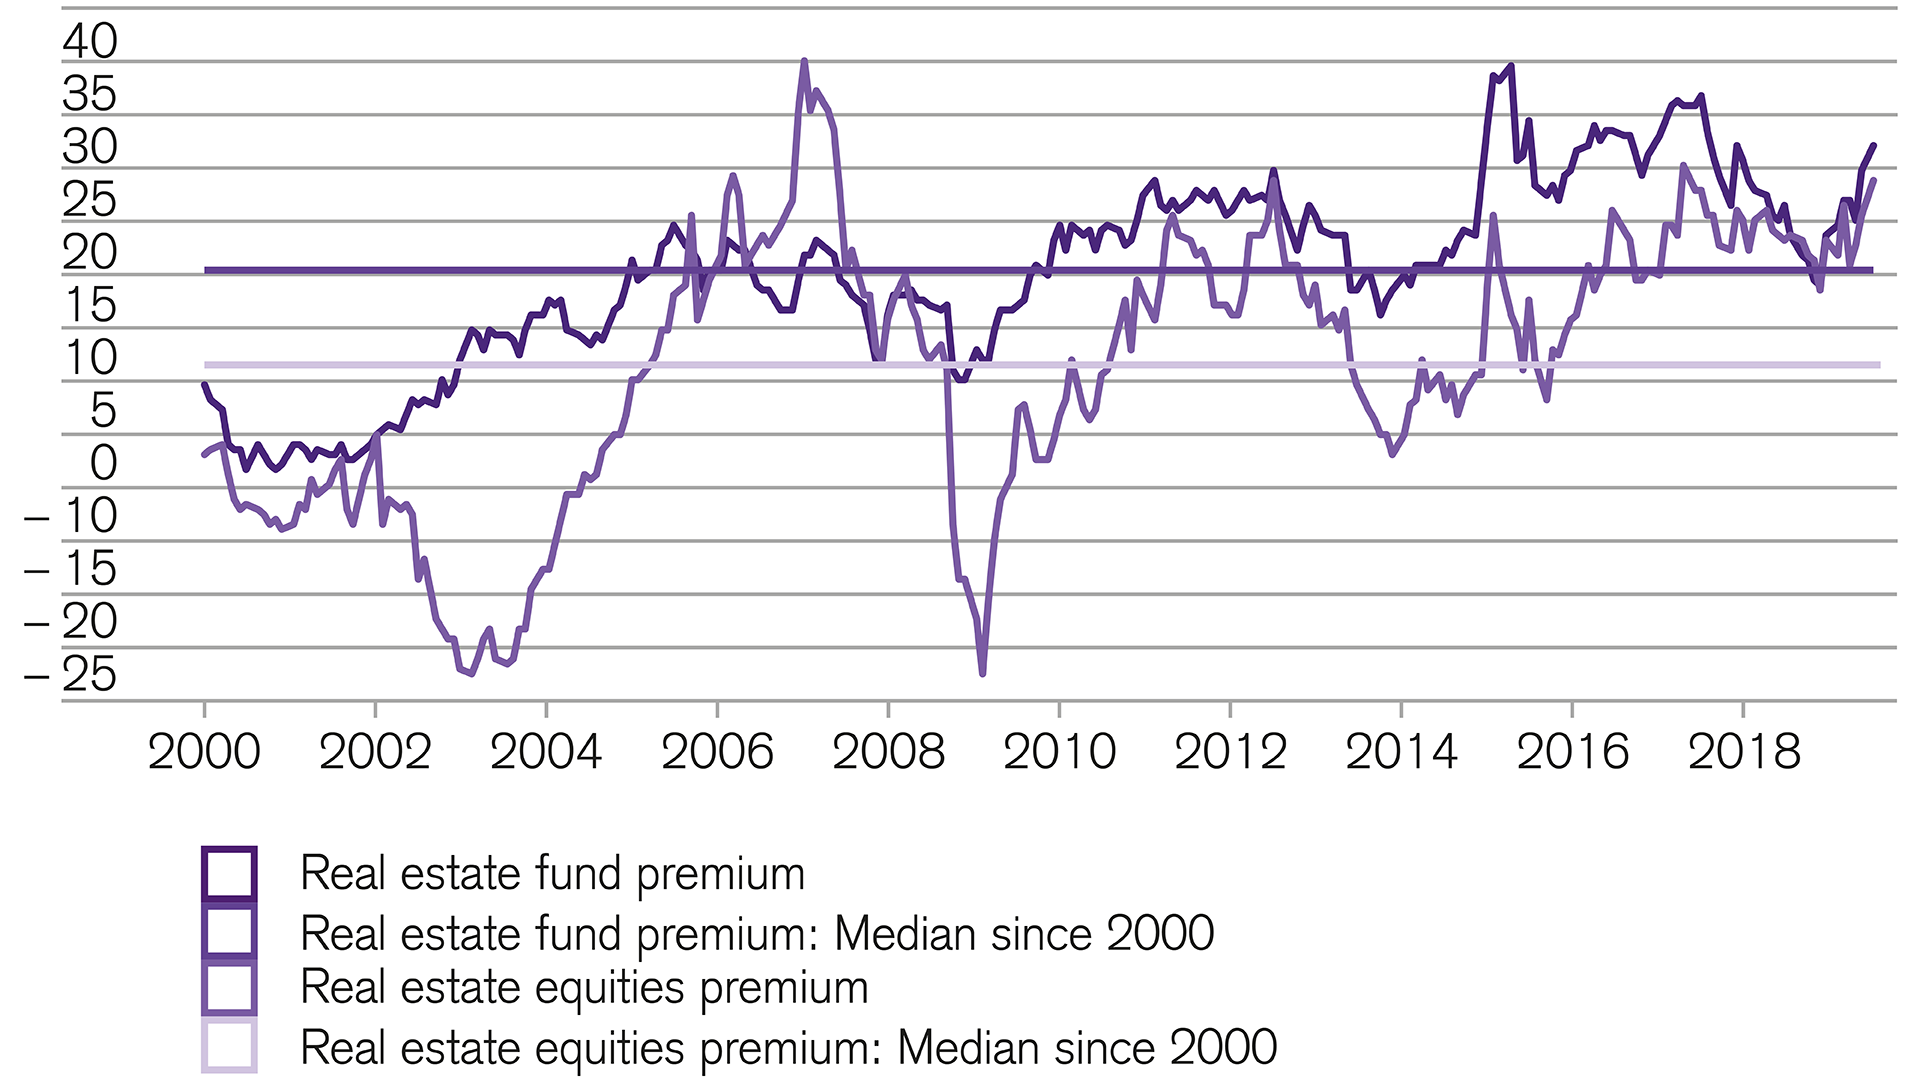 Swiss real estate equities remain attractive